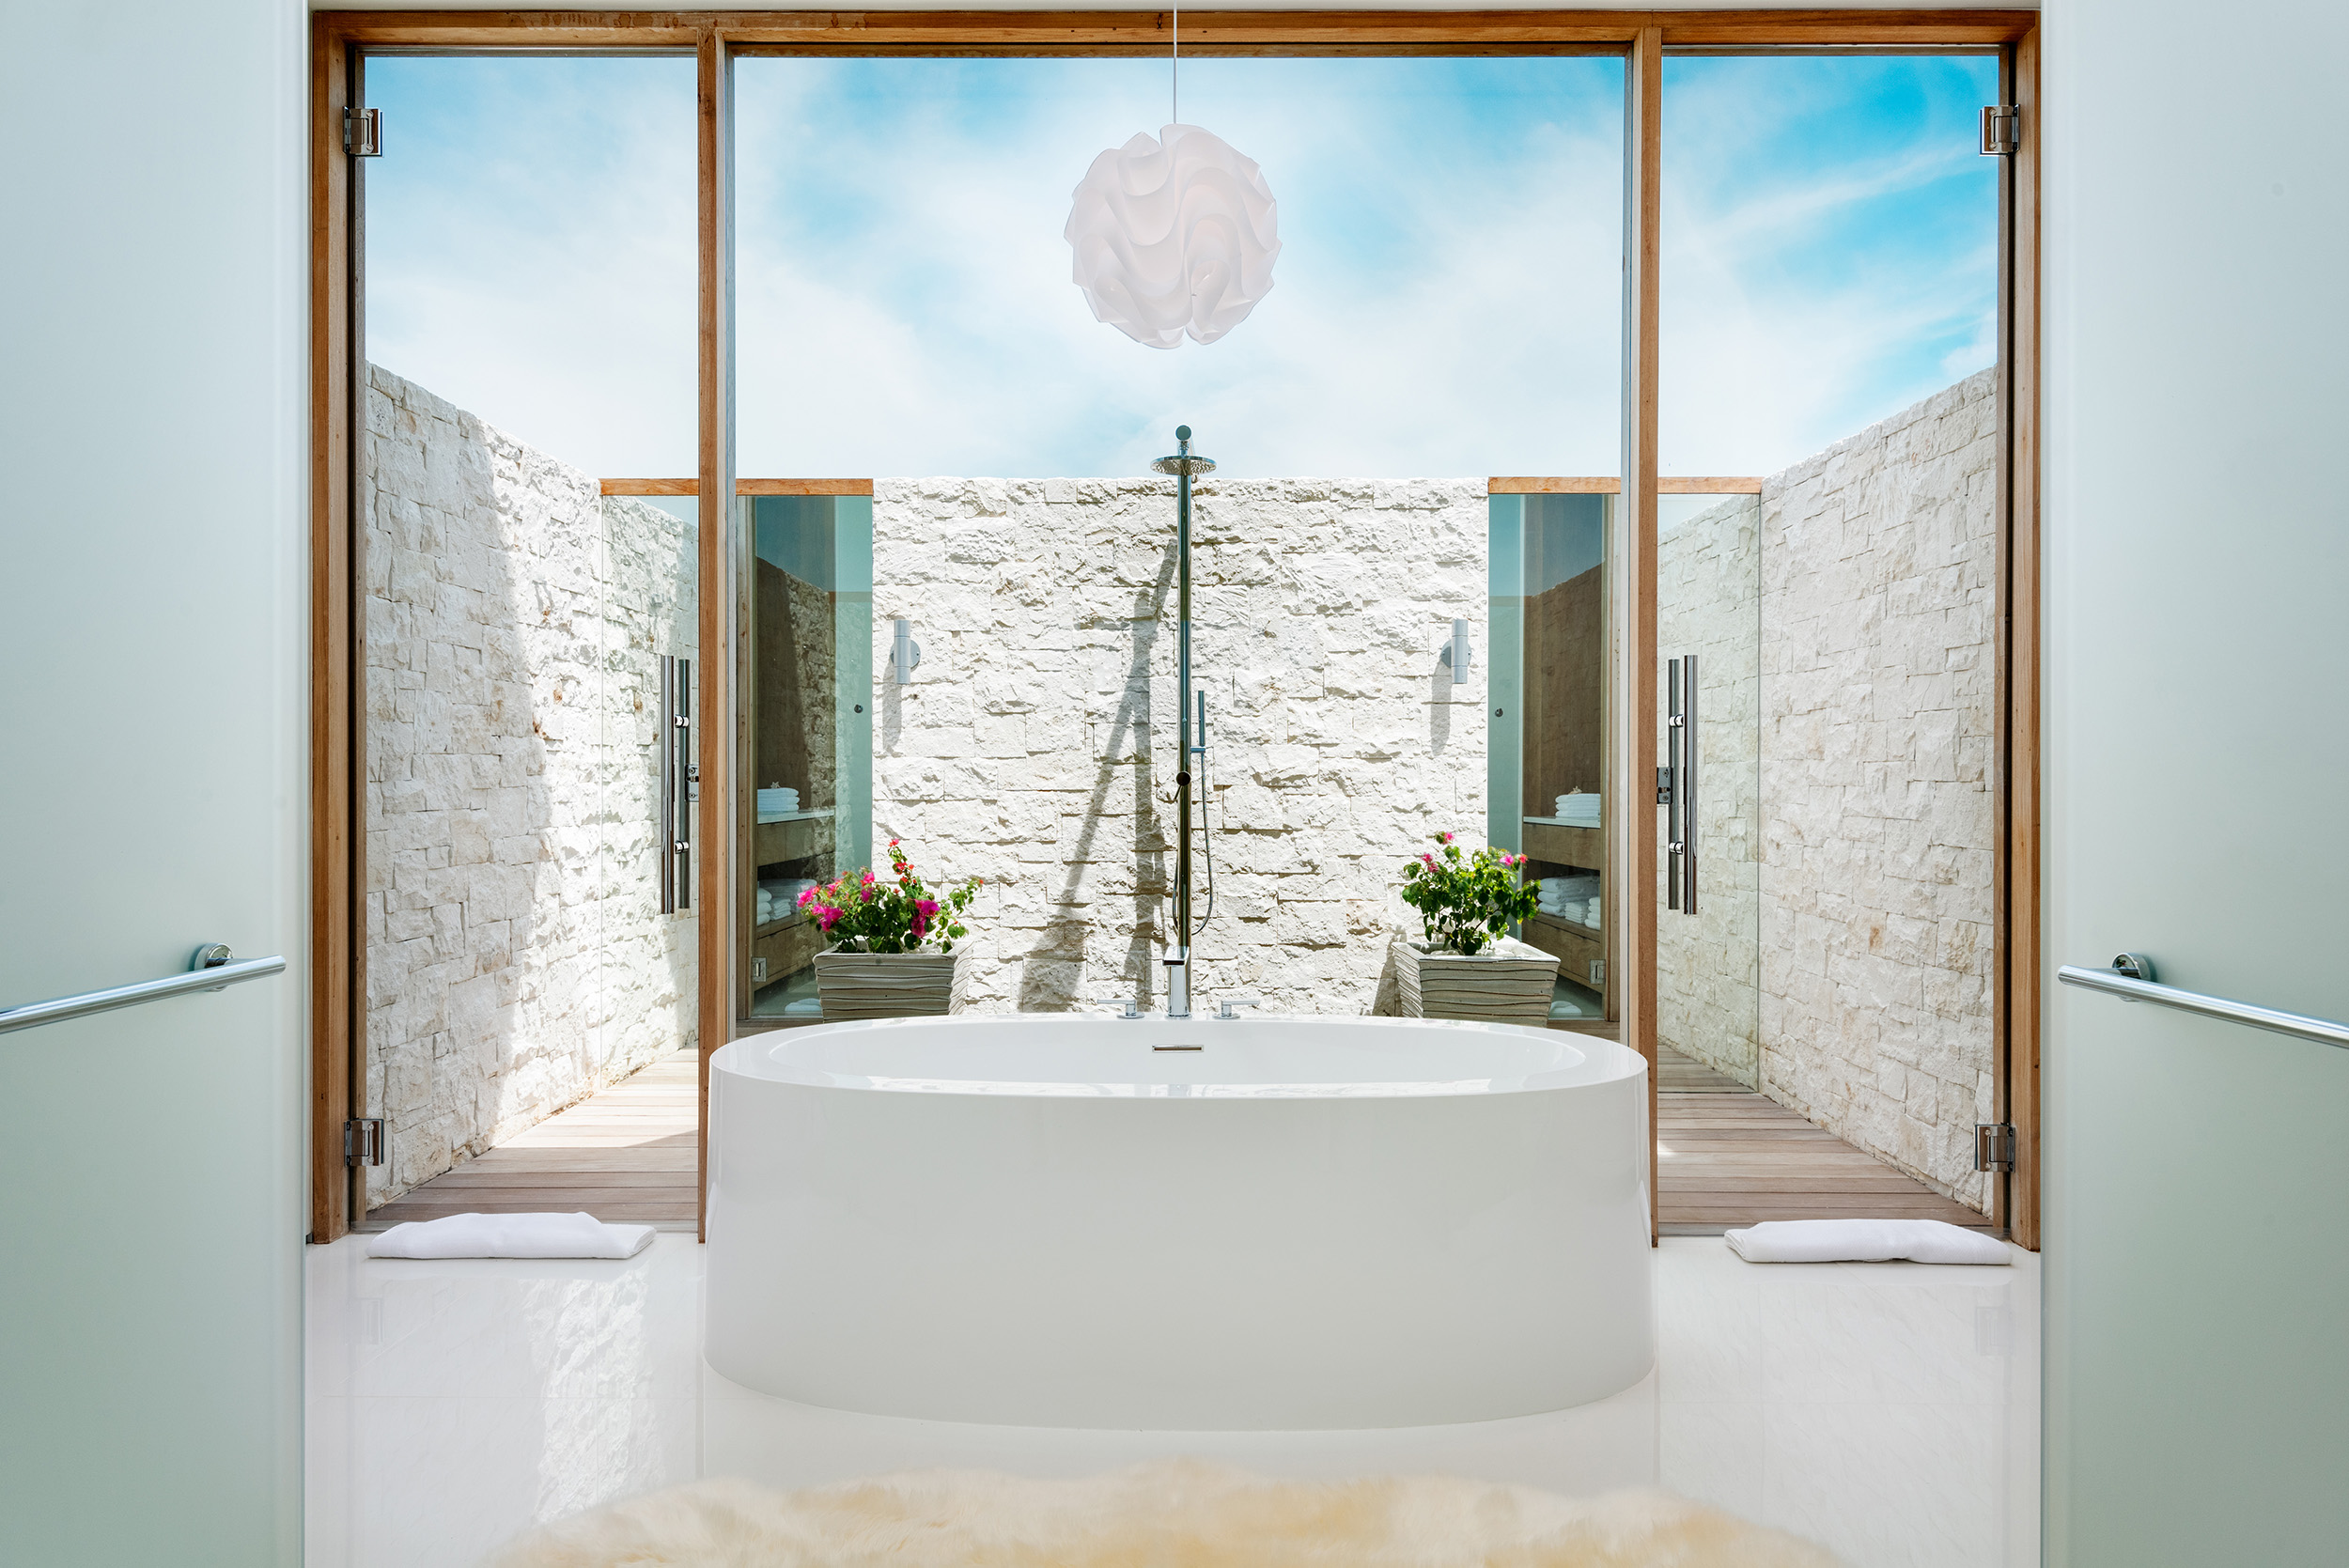 Emerald Pavilion - view of a bathroom with outdoor shower area